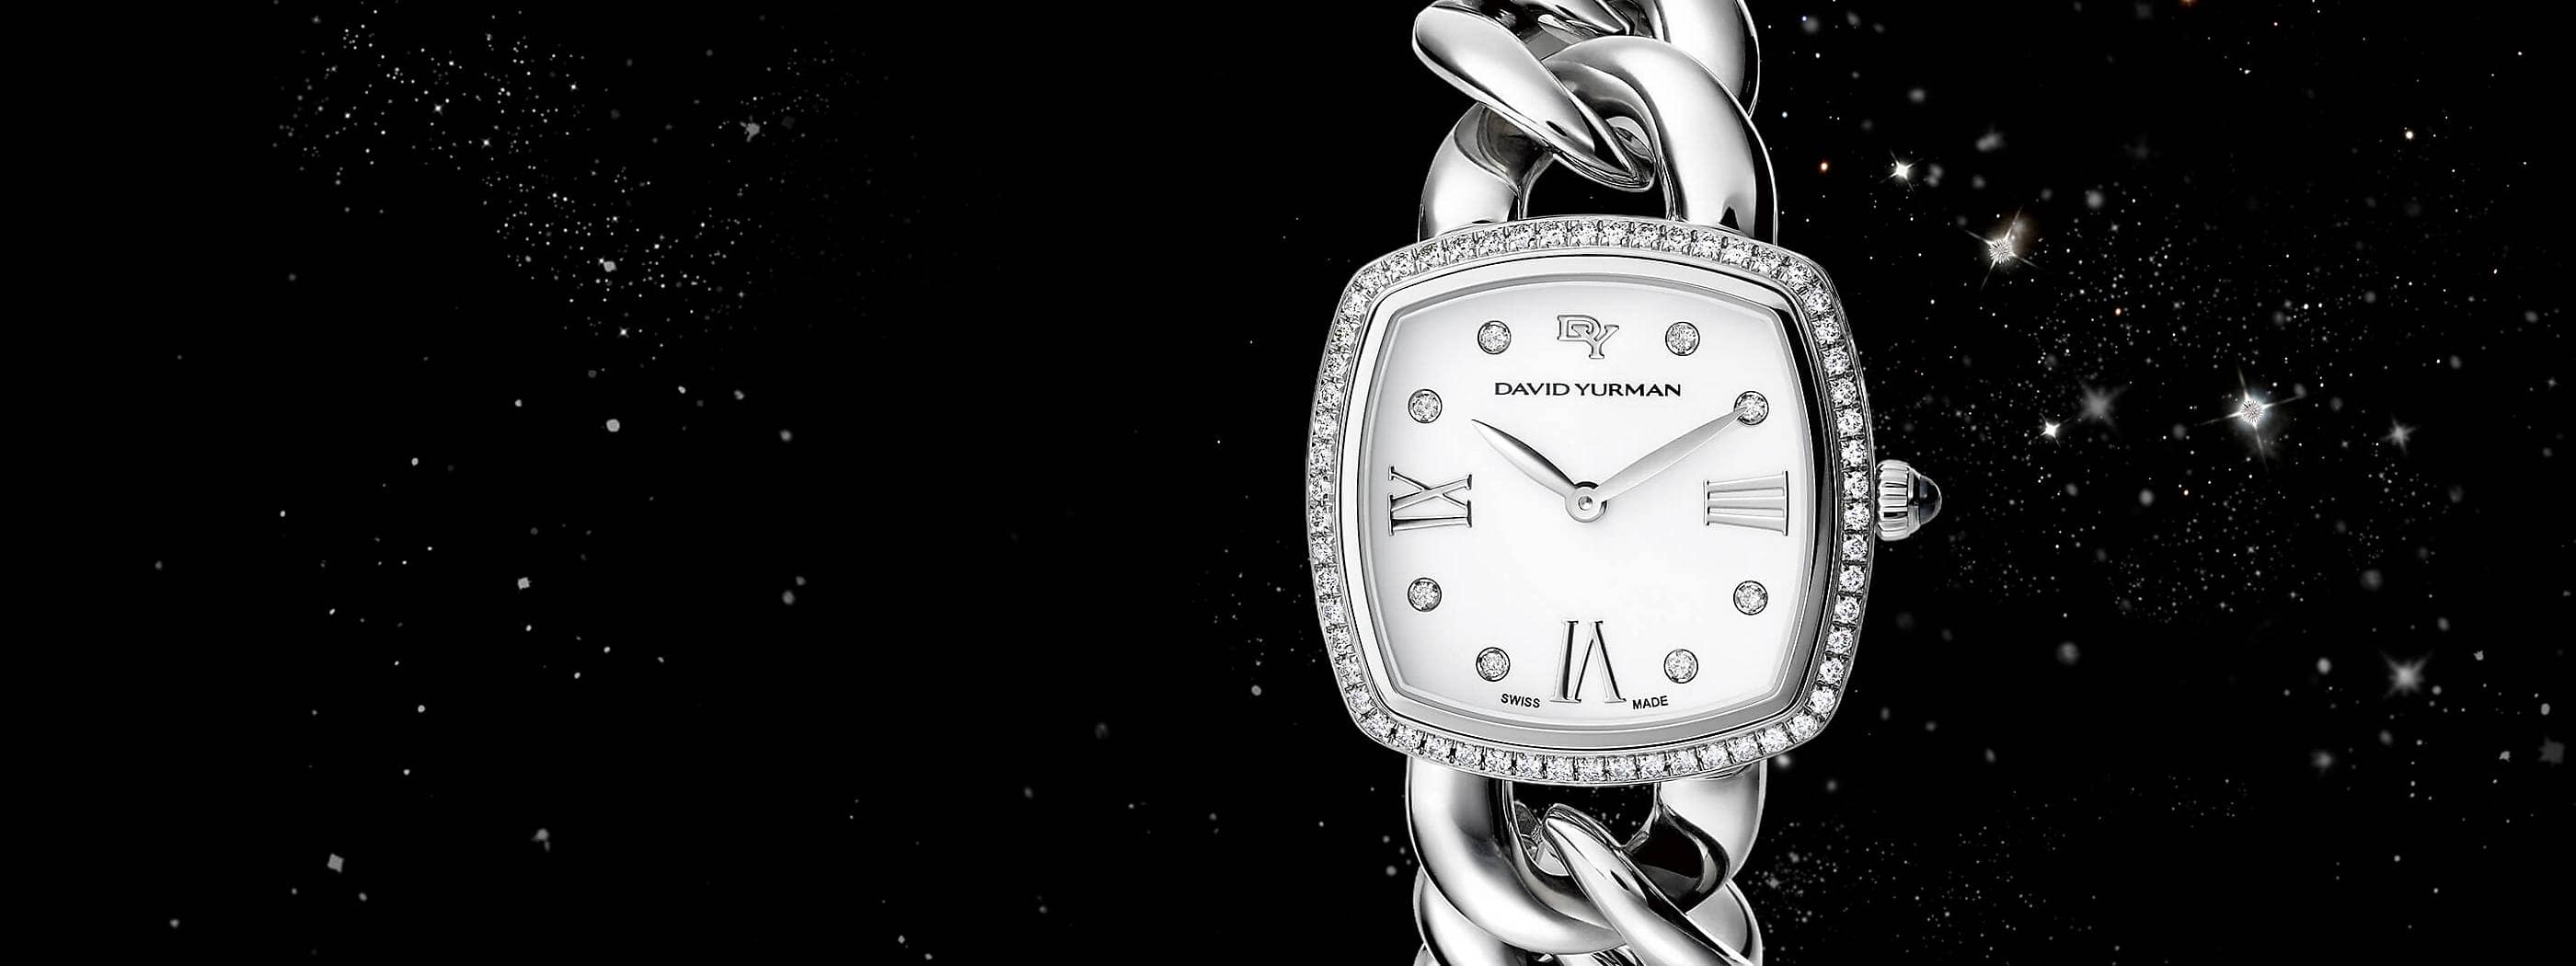 A color photograph shows a close-up shot of a David Yurman women's Albion bracelet watch floating in front of a starry night sky. It is crafted from stainless steel with pavé diamonds.